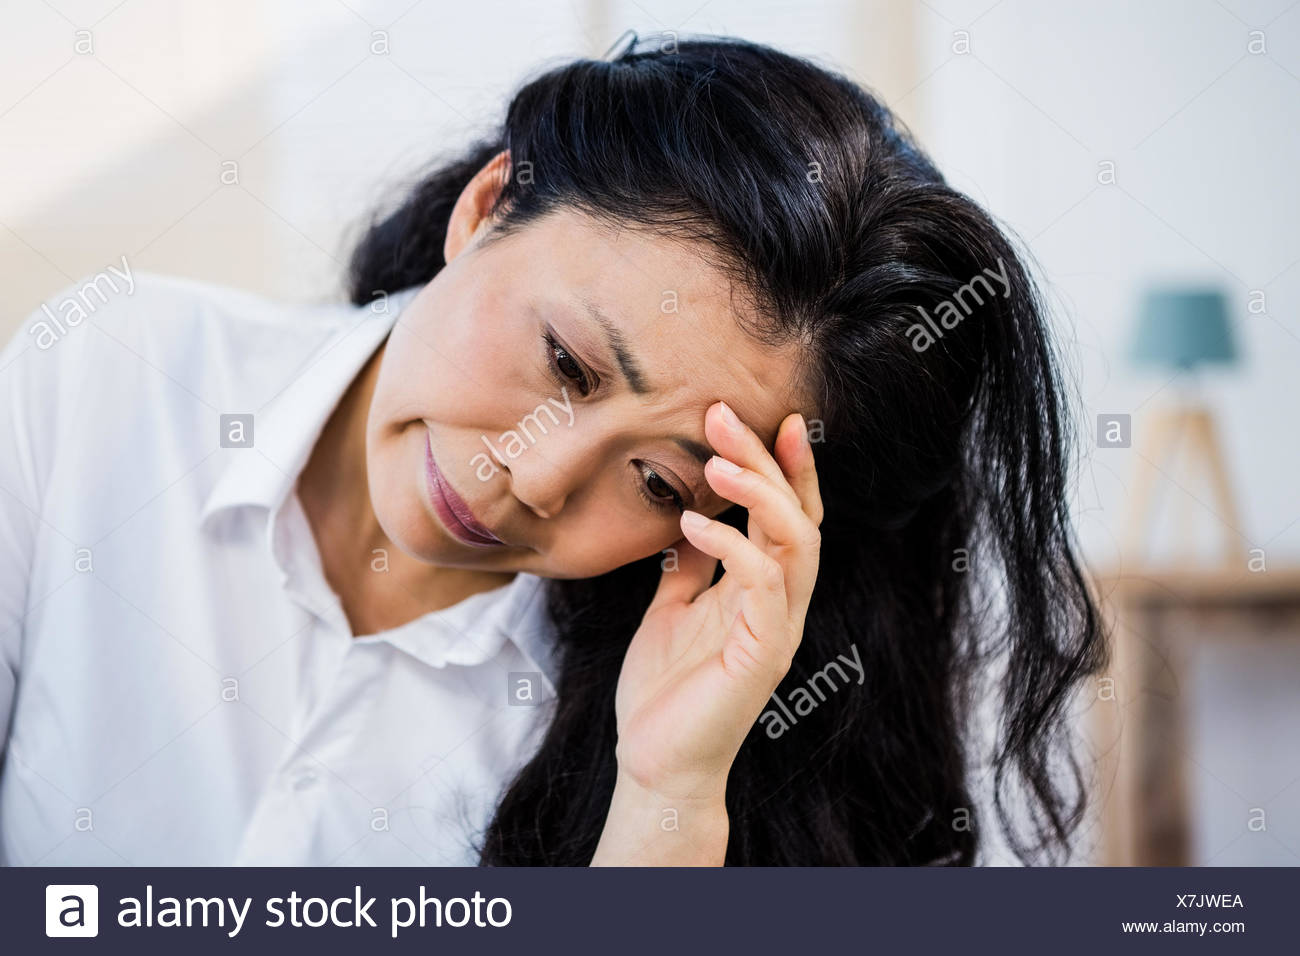 Concerned woman sitting at home - Stock Image